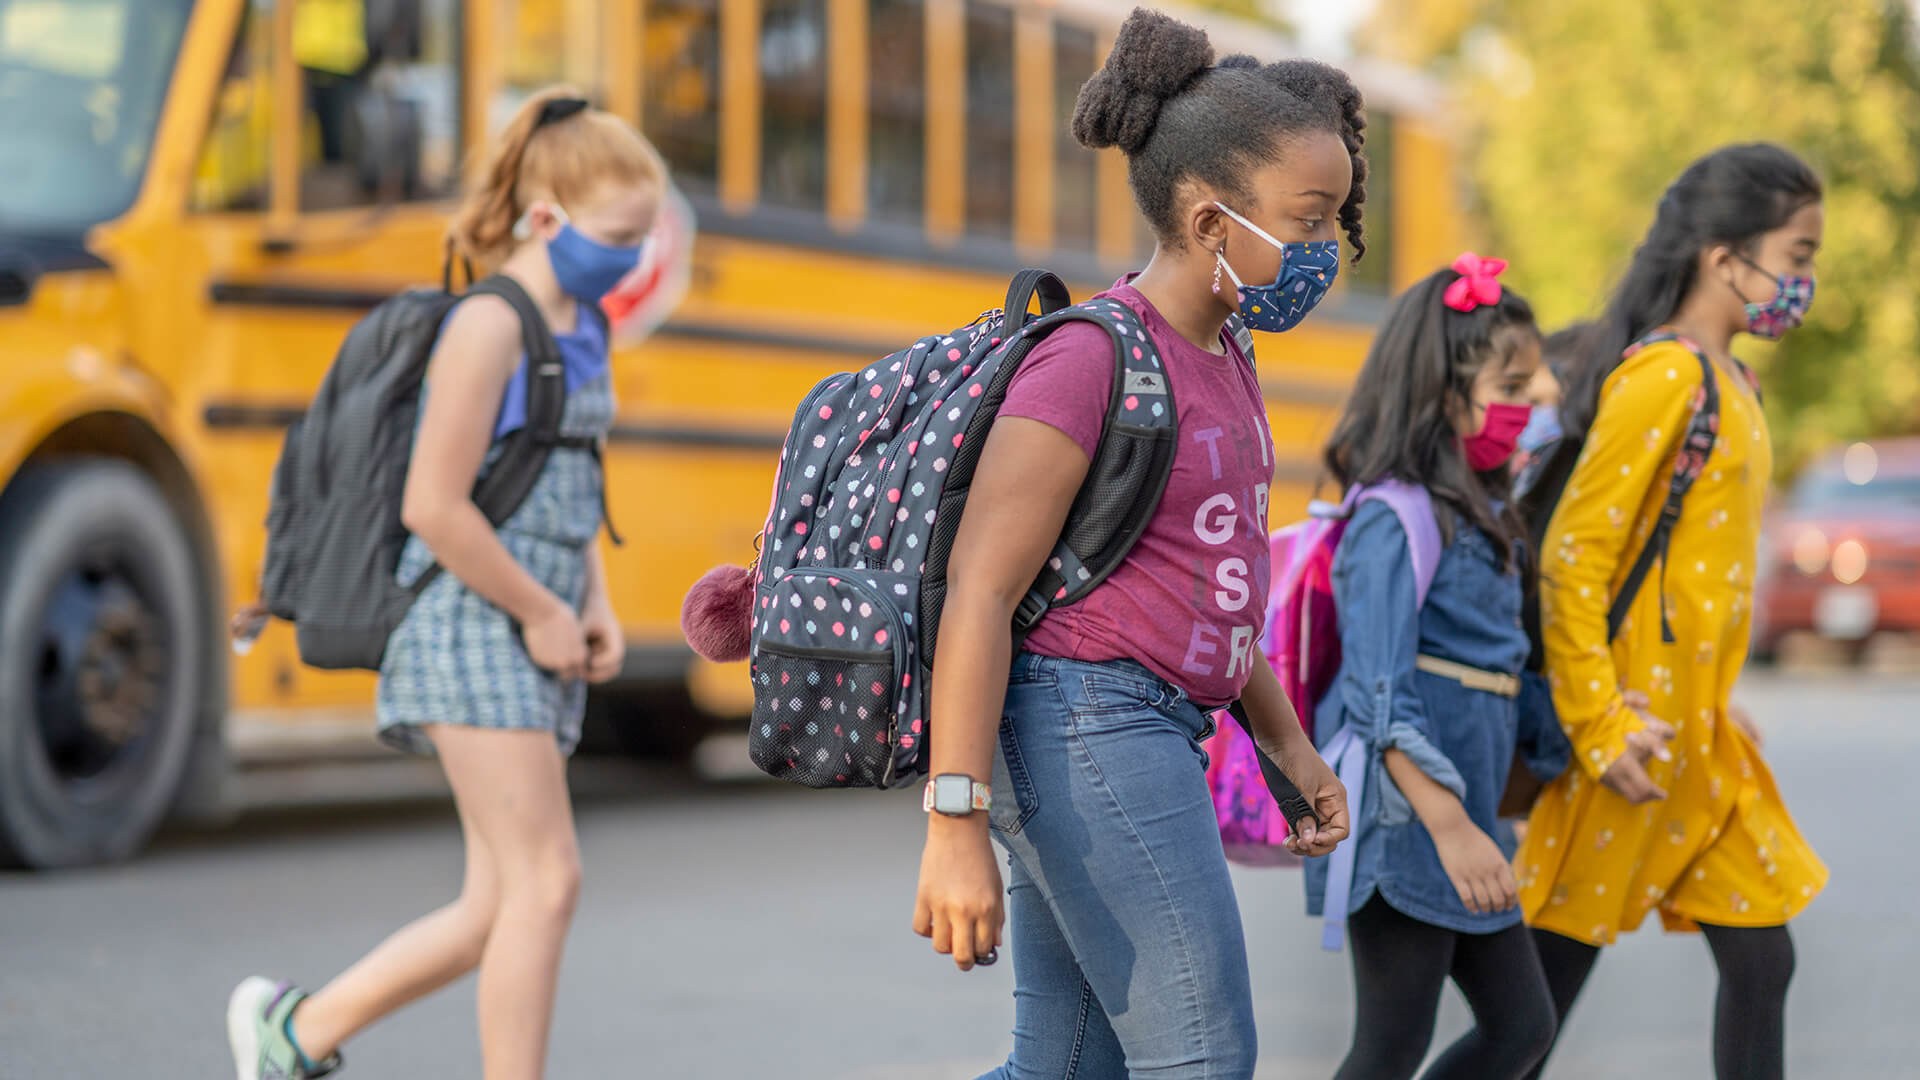 The Liturgy of Back-to-School Routines